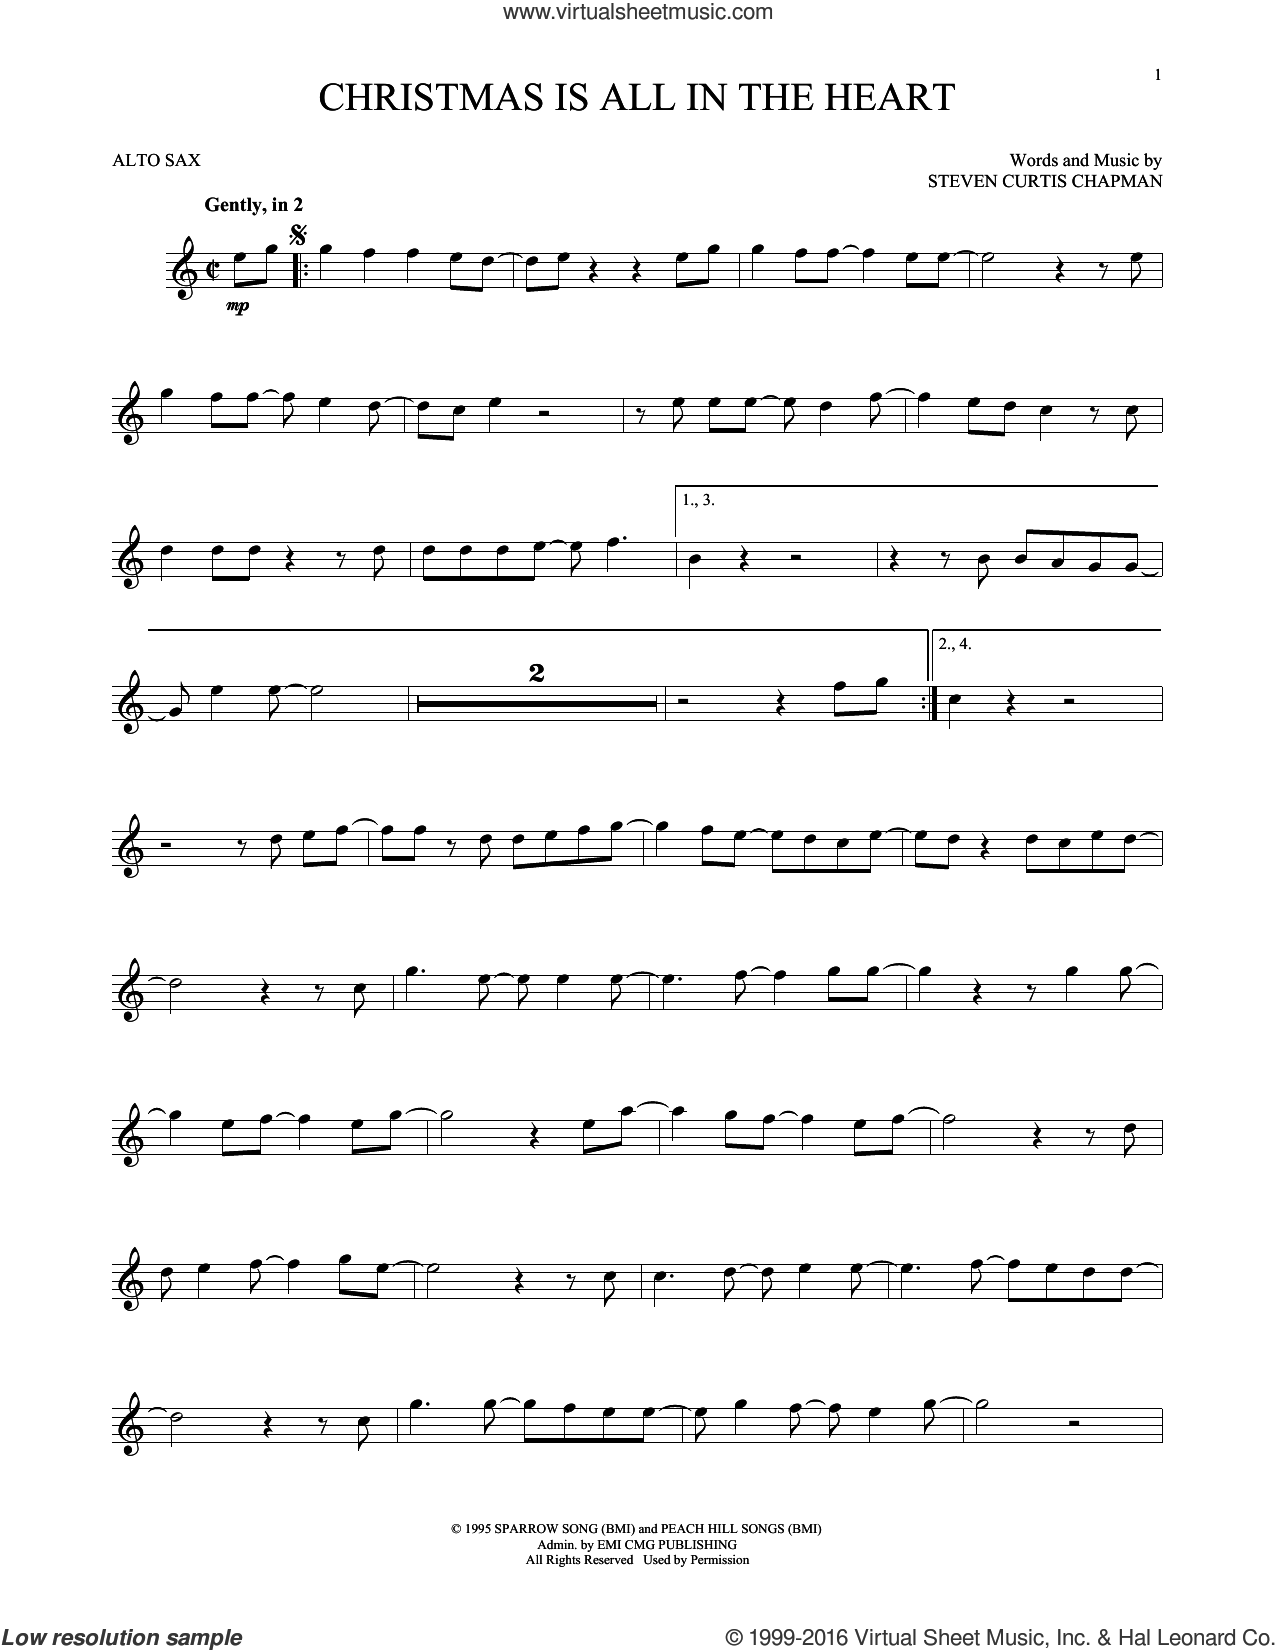 Christmas Is All In The Heart sheet music for alto saxophone solo by Steven Curtis Chapman